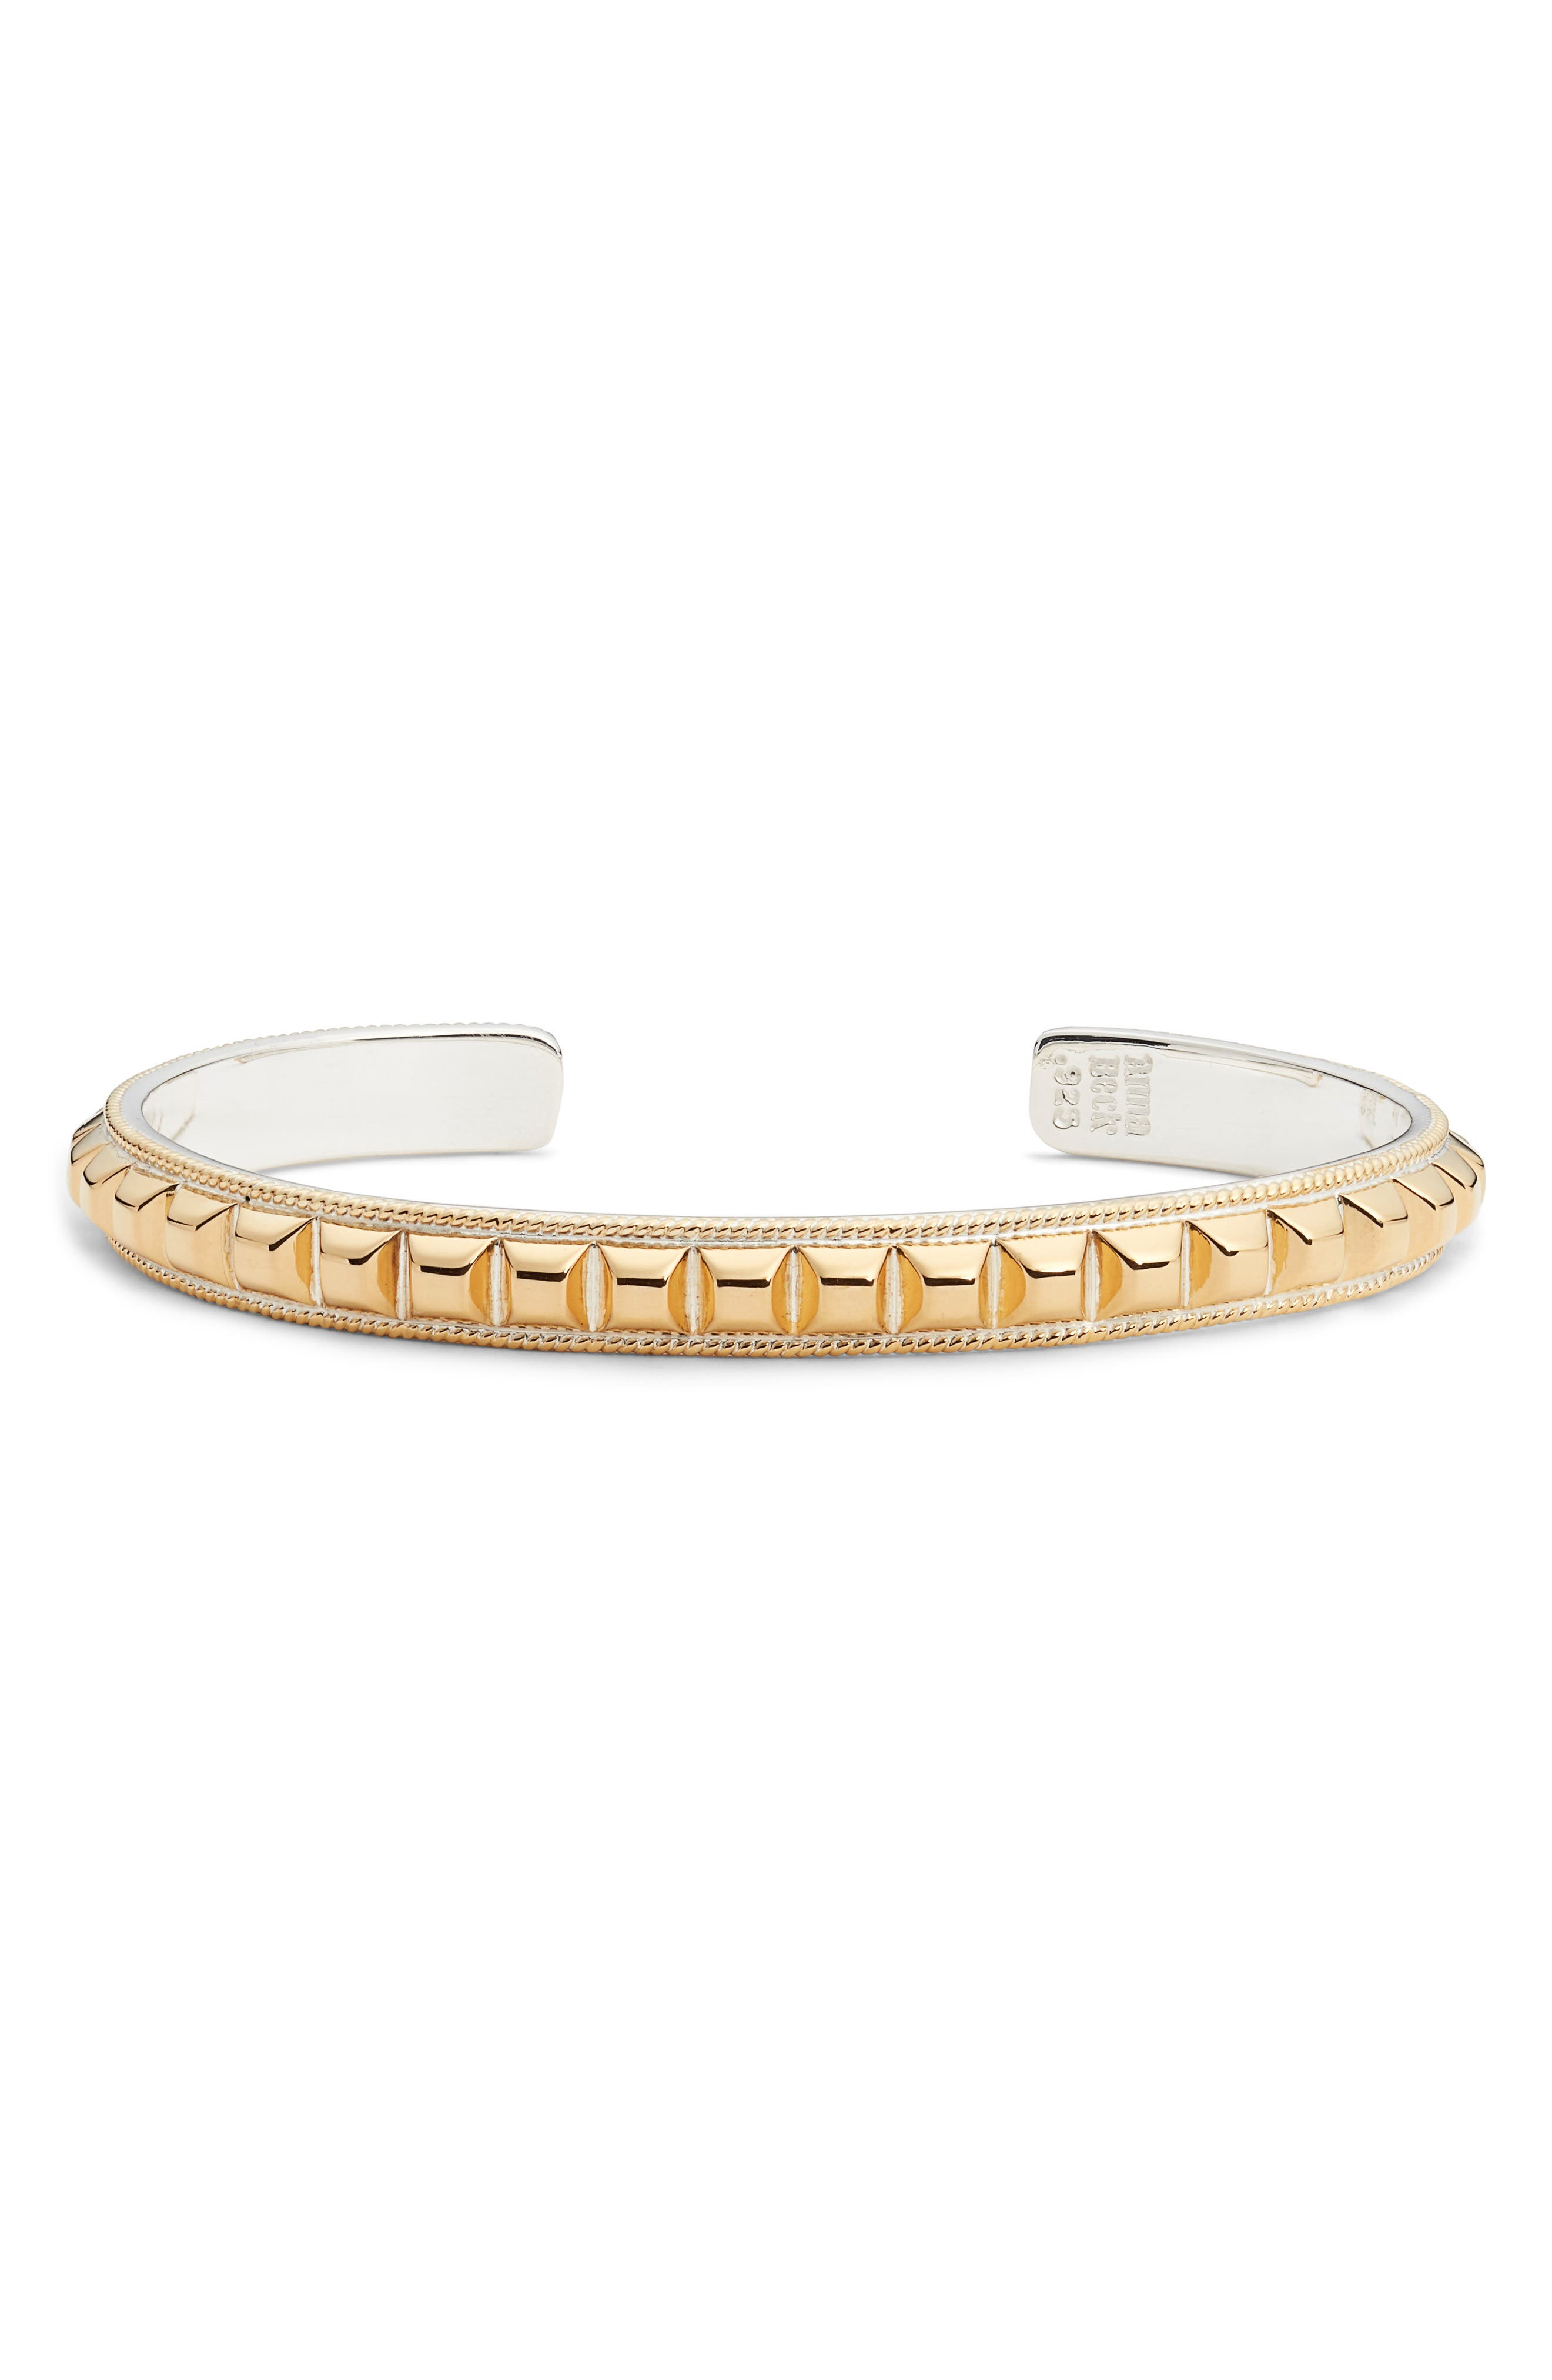 ANNA BECK Studded Skinny Cuff in Gold